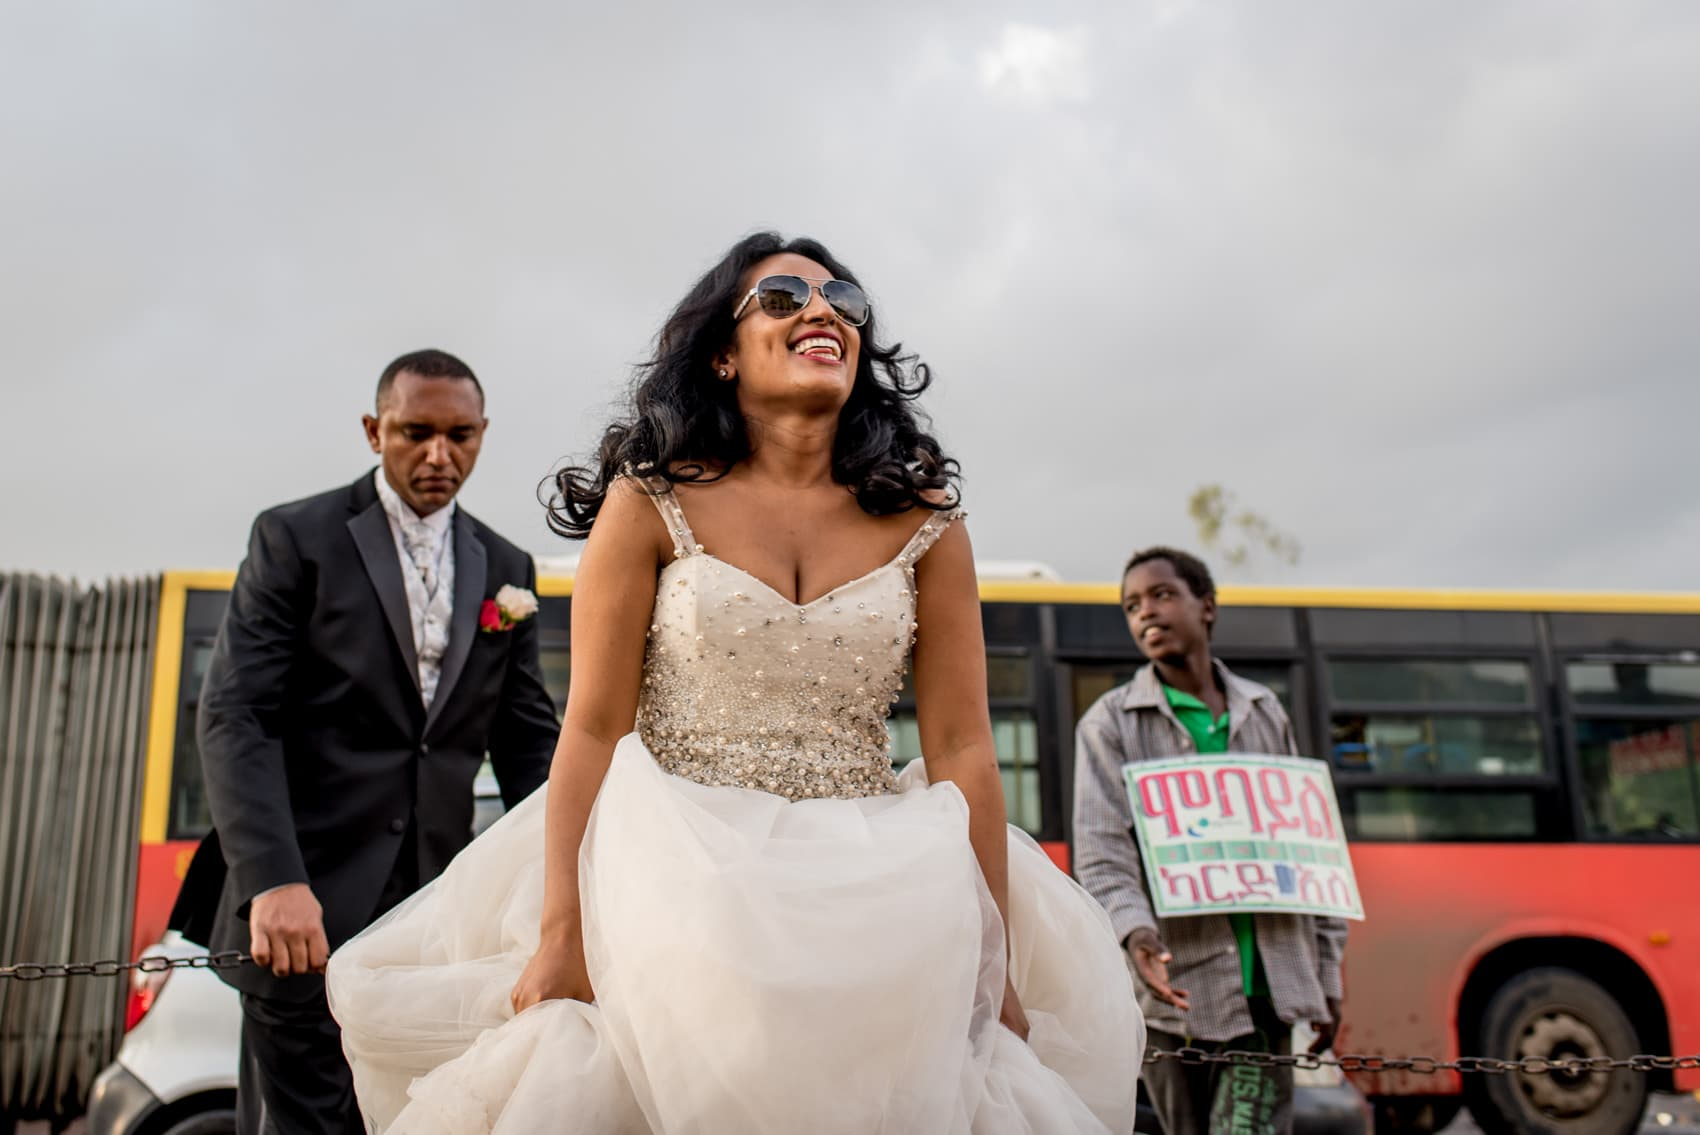 happy bride at bus depot in Addis Ababa